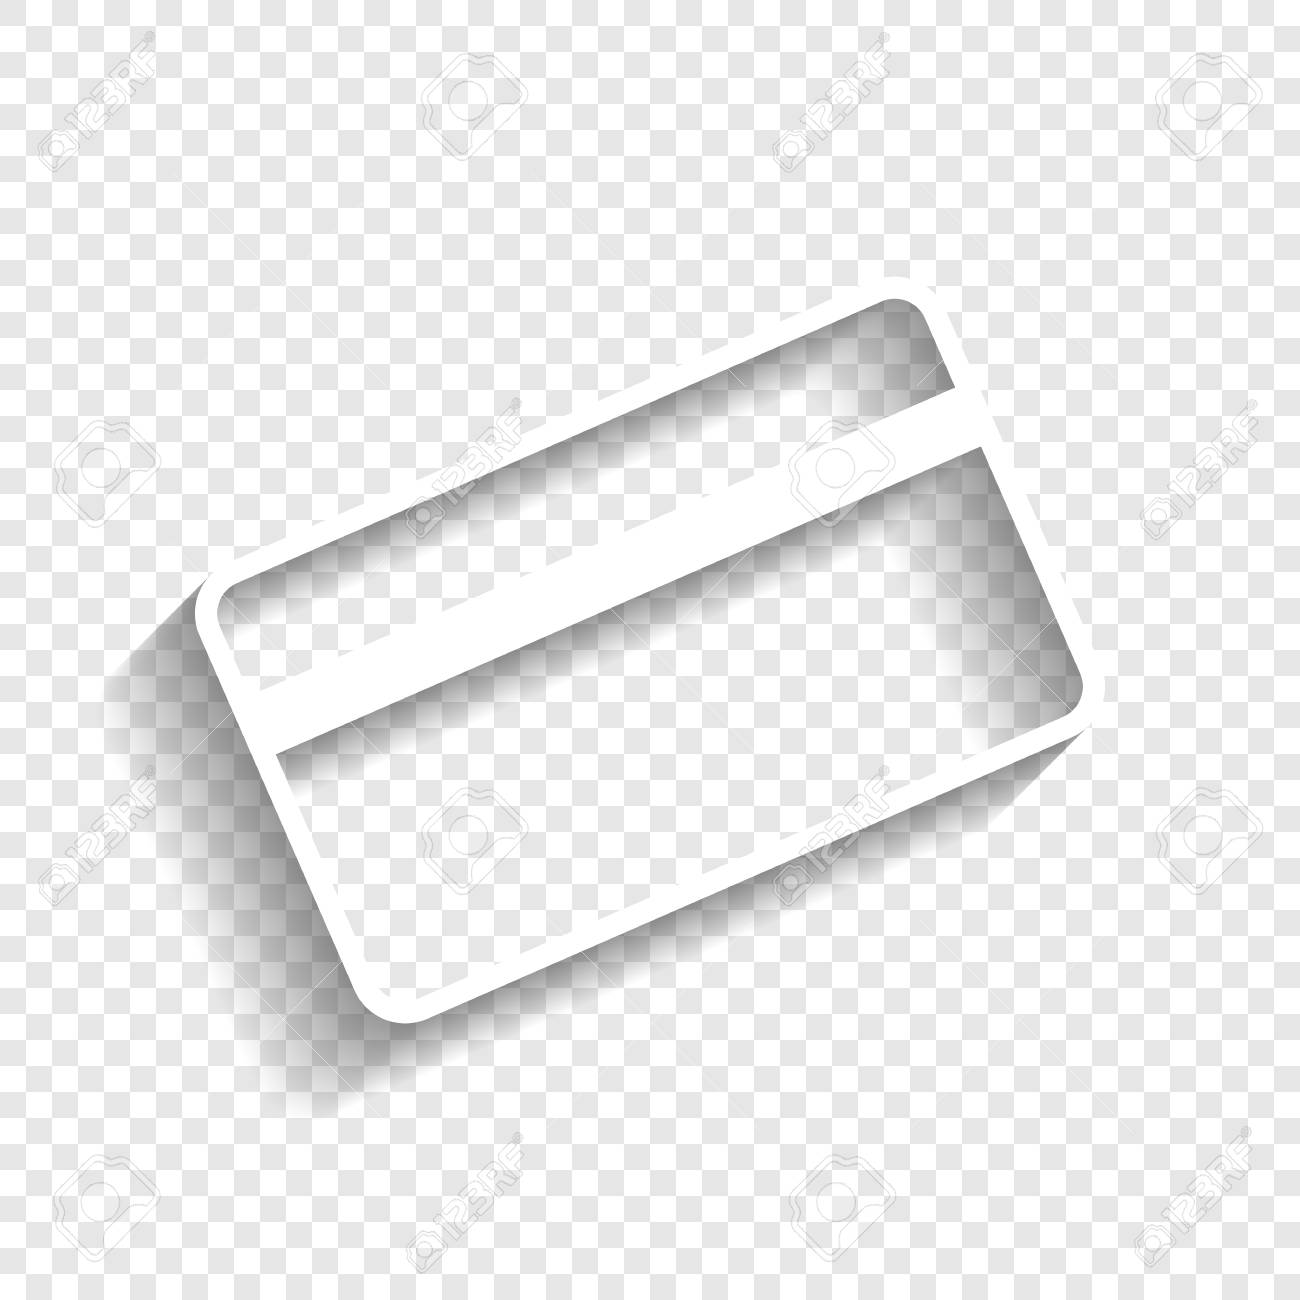 credit card symbol for download vector white icon with soft